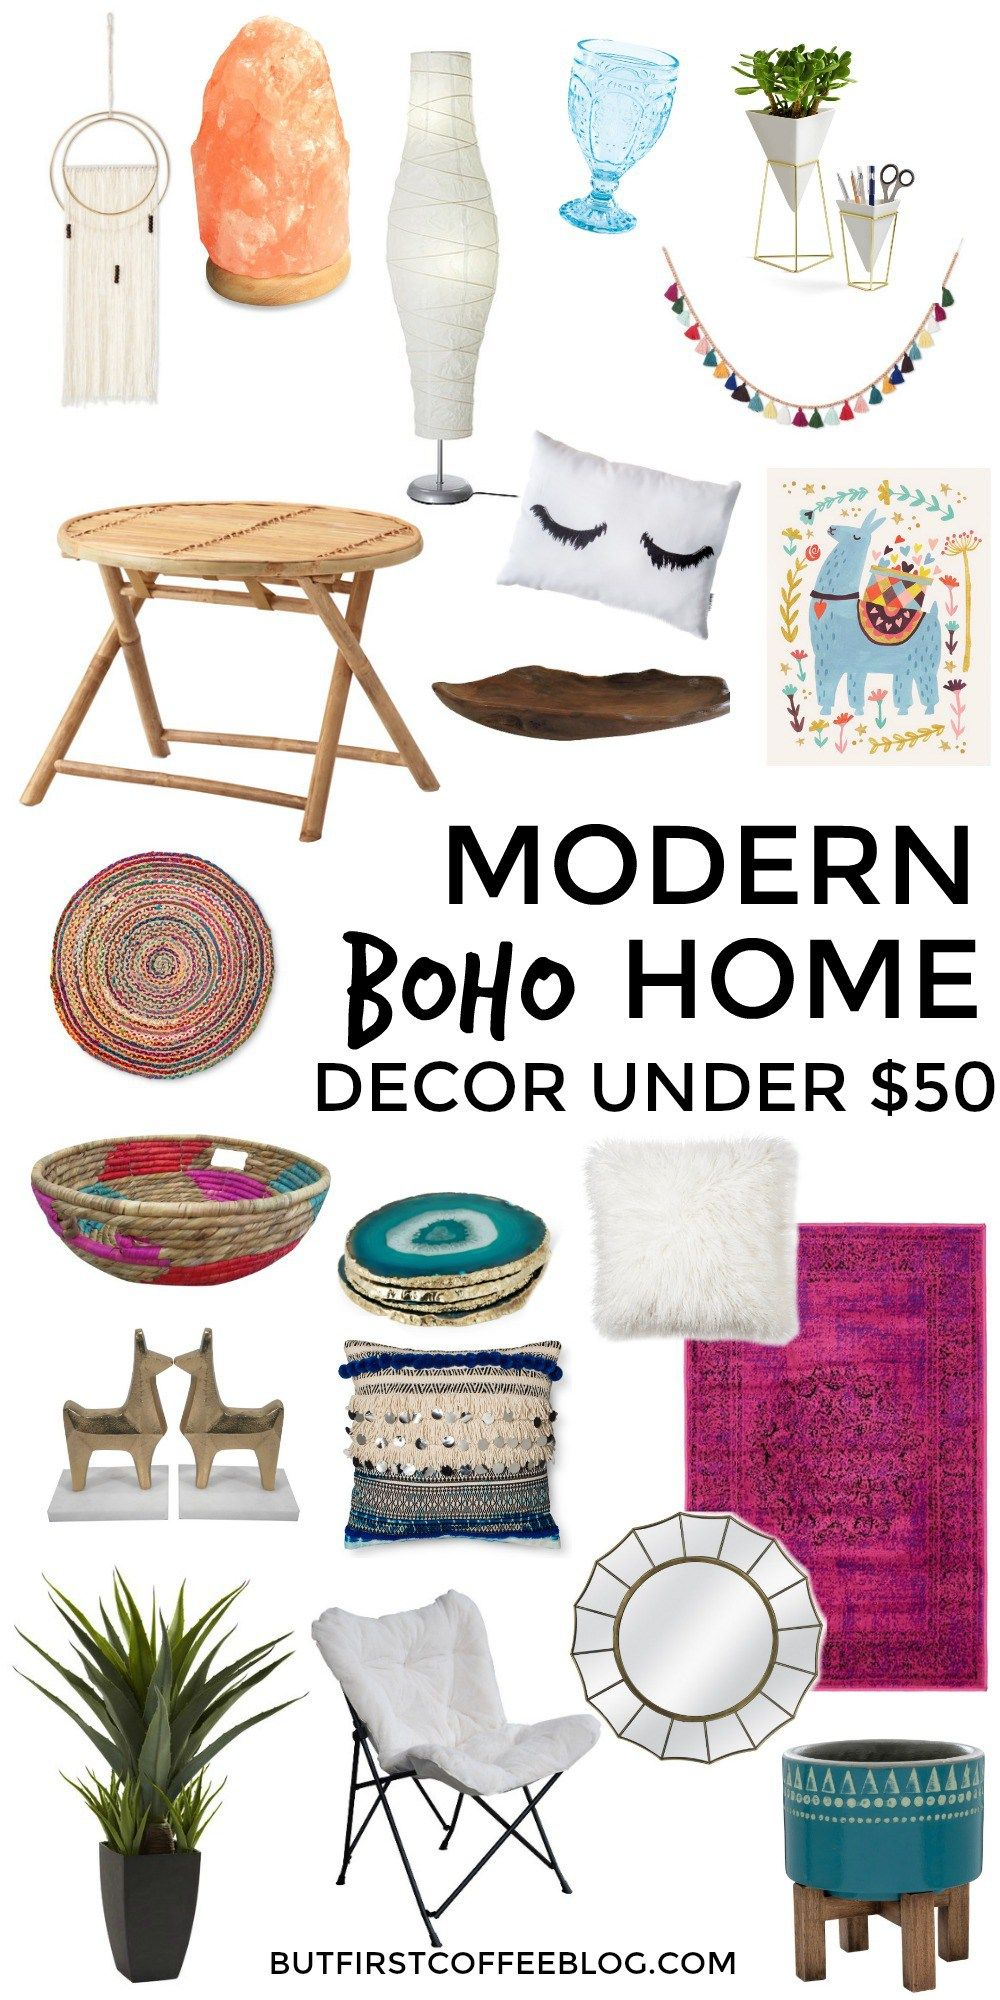 Modern Boho Home Decor That You Can Get for Under $50 | For my ...